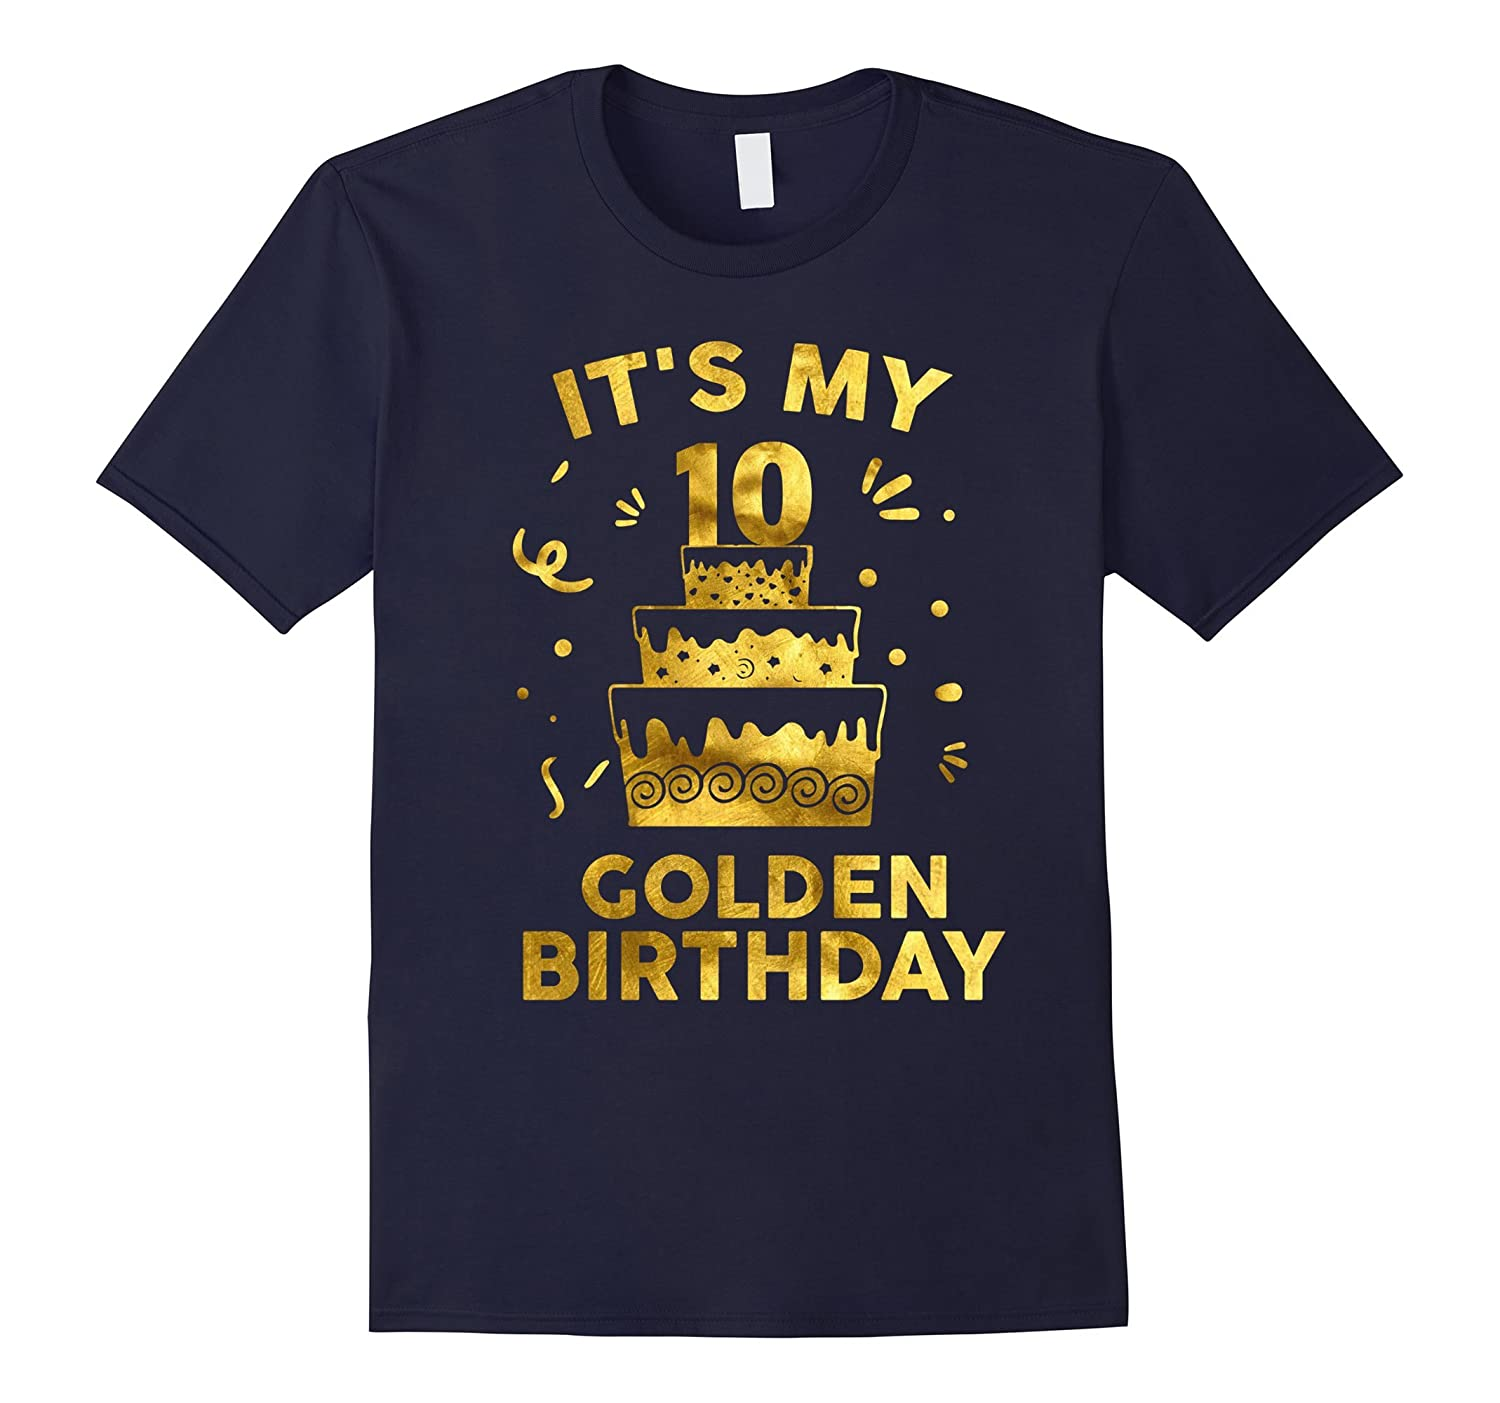 10th Birthday Shirt It's My 10th Golden Birthday Vintage-T-Shirt